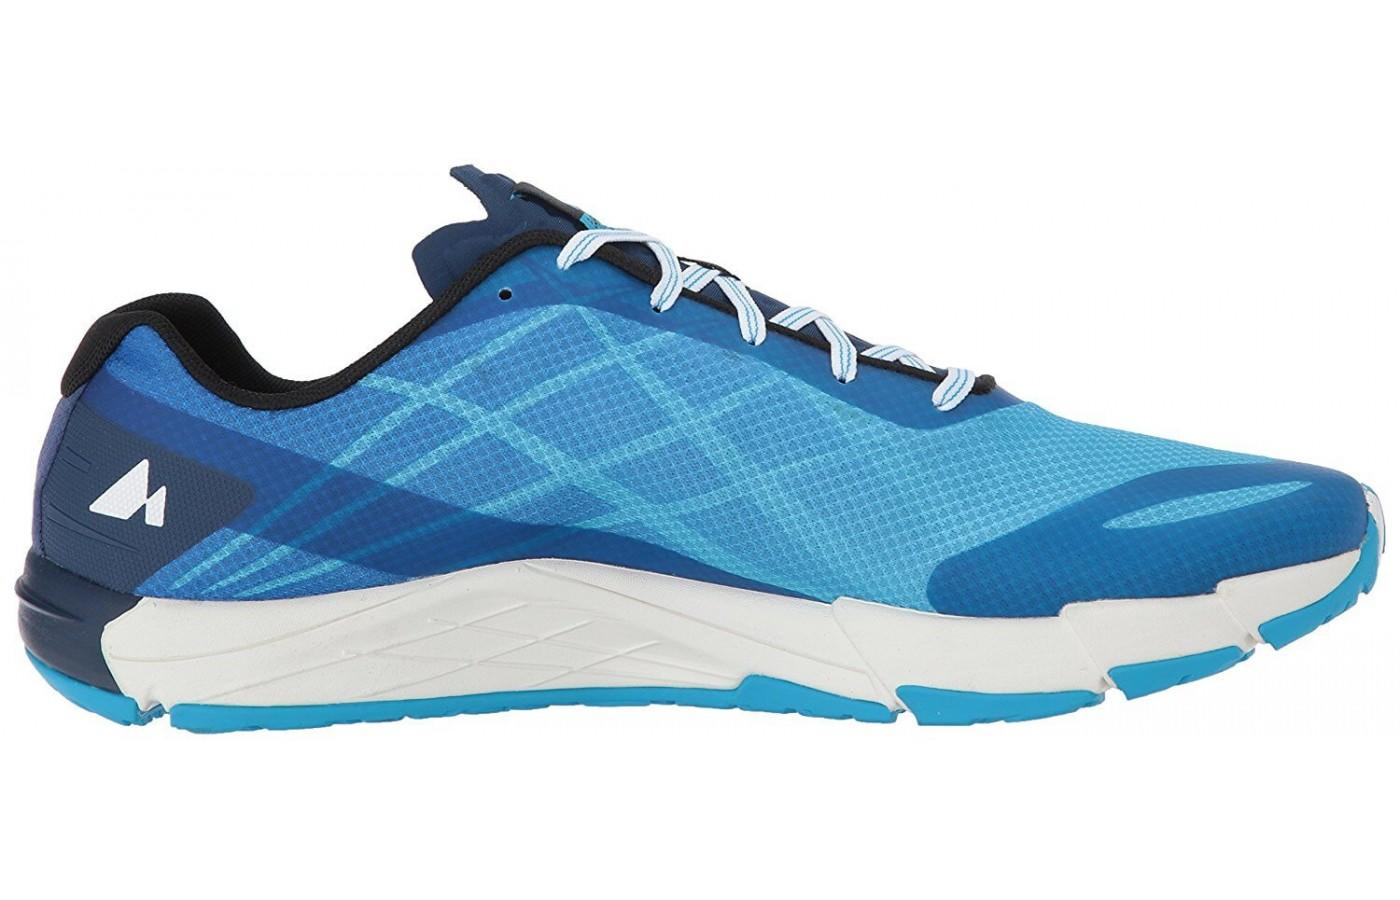 The lightweight, zero drop shoe is great for speed work.